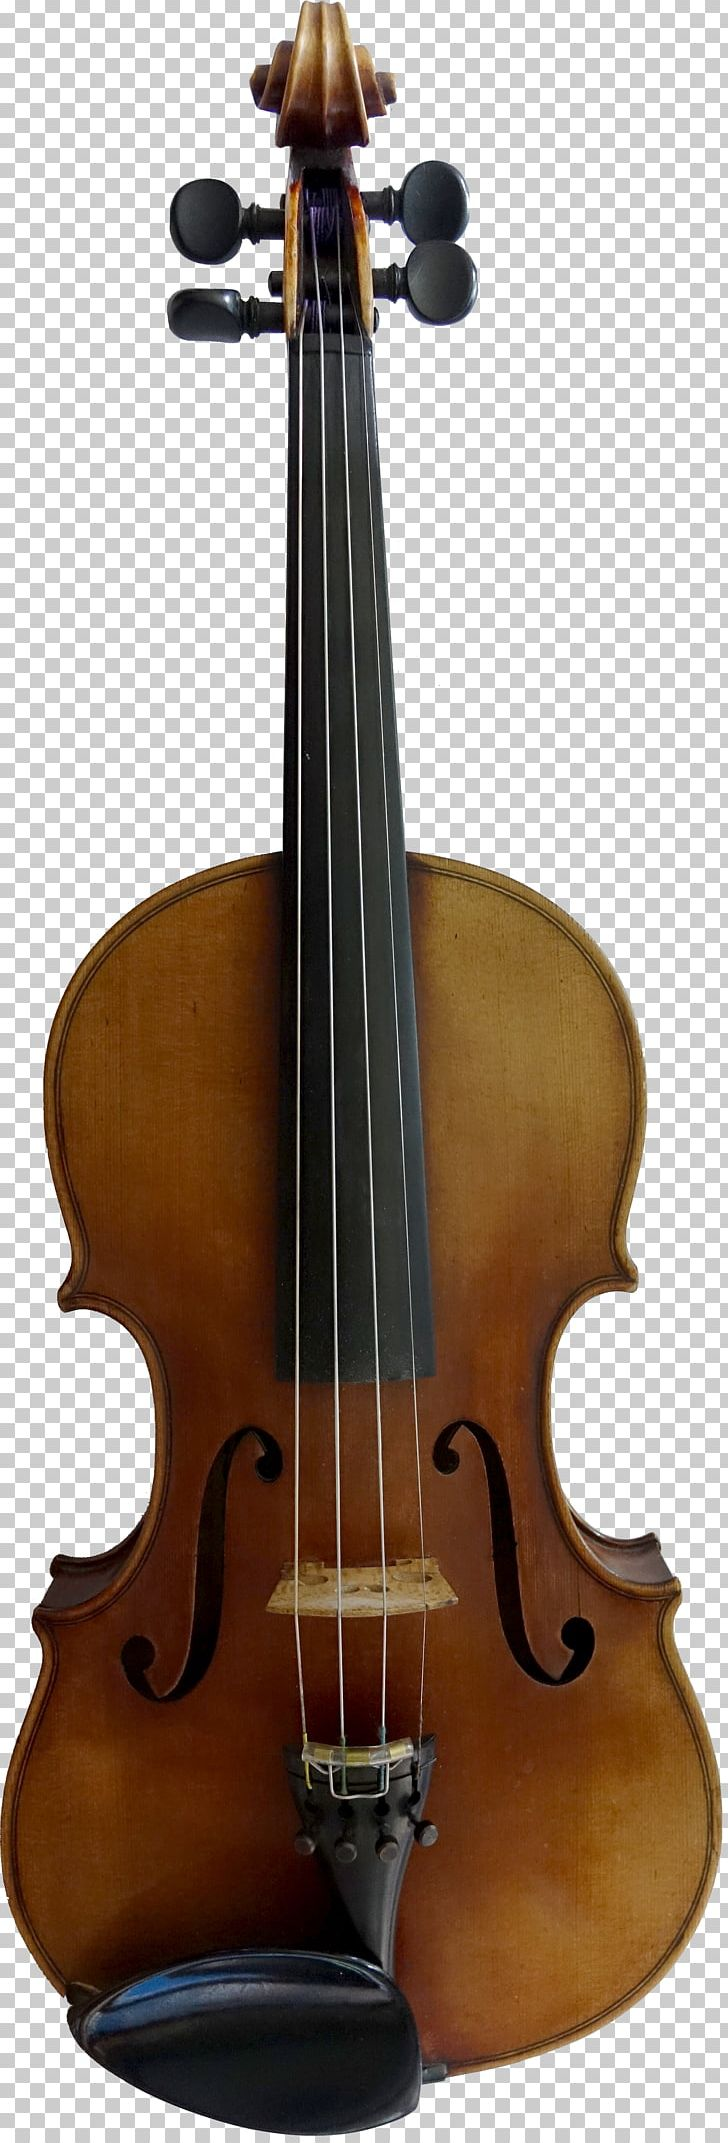 Cremona Violin Guarneri Luthier Amati PNG, Clipart, Acoustic Electric Guitar, Bow, Cellist, Double Bass, Musical Instrument Free PNG Download